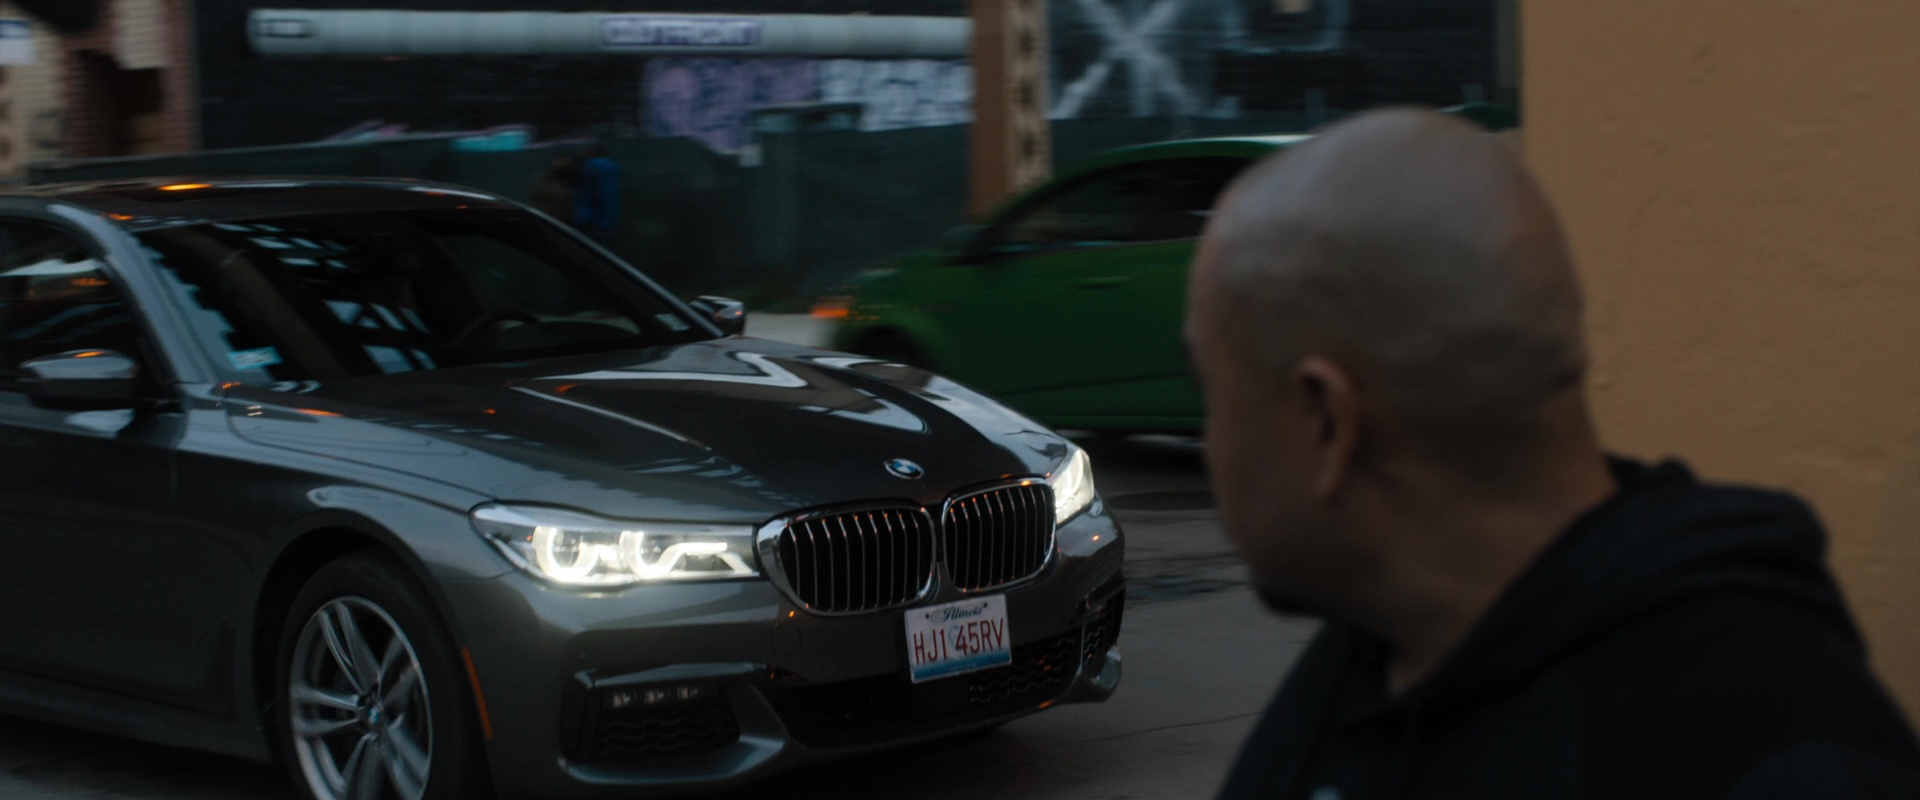 bmw 7 series car used by bruce willis in death wish 2018